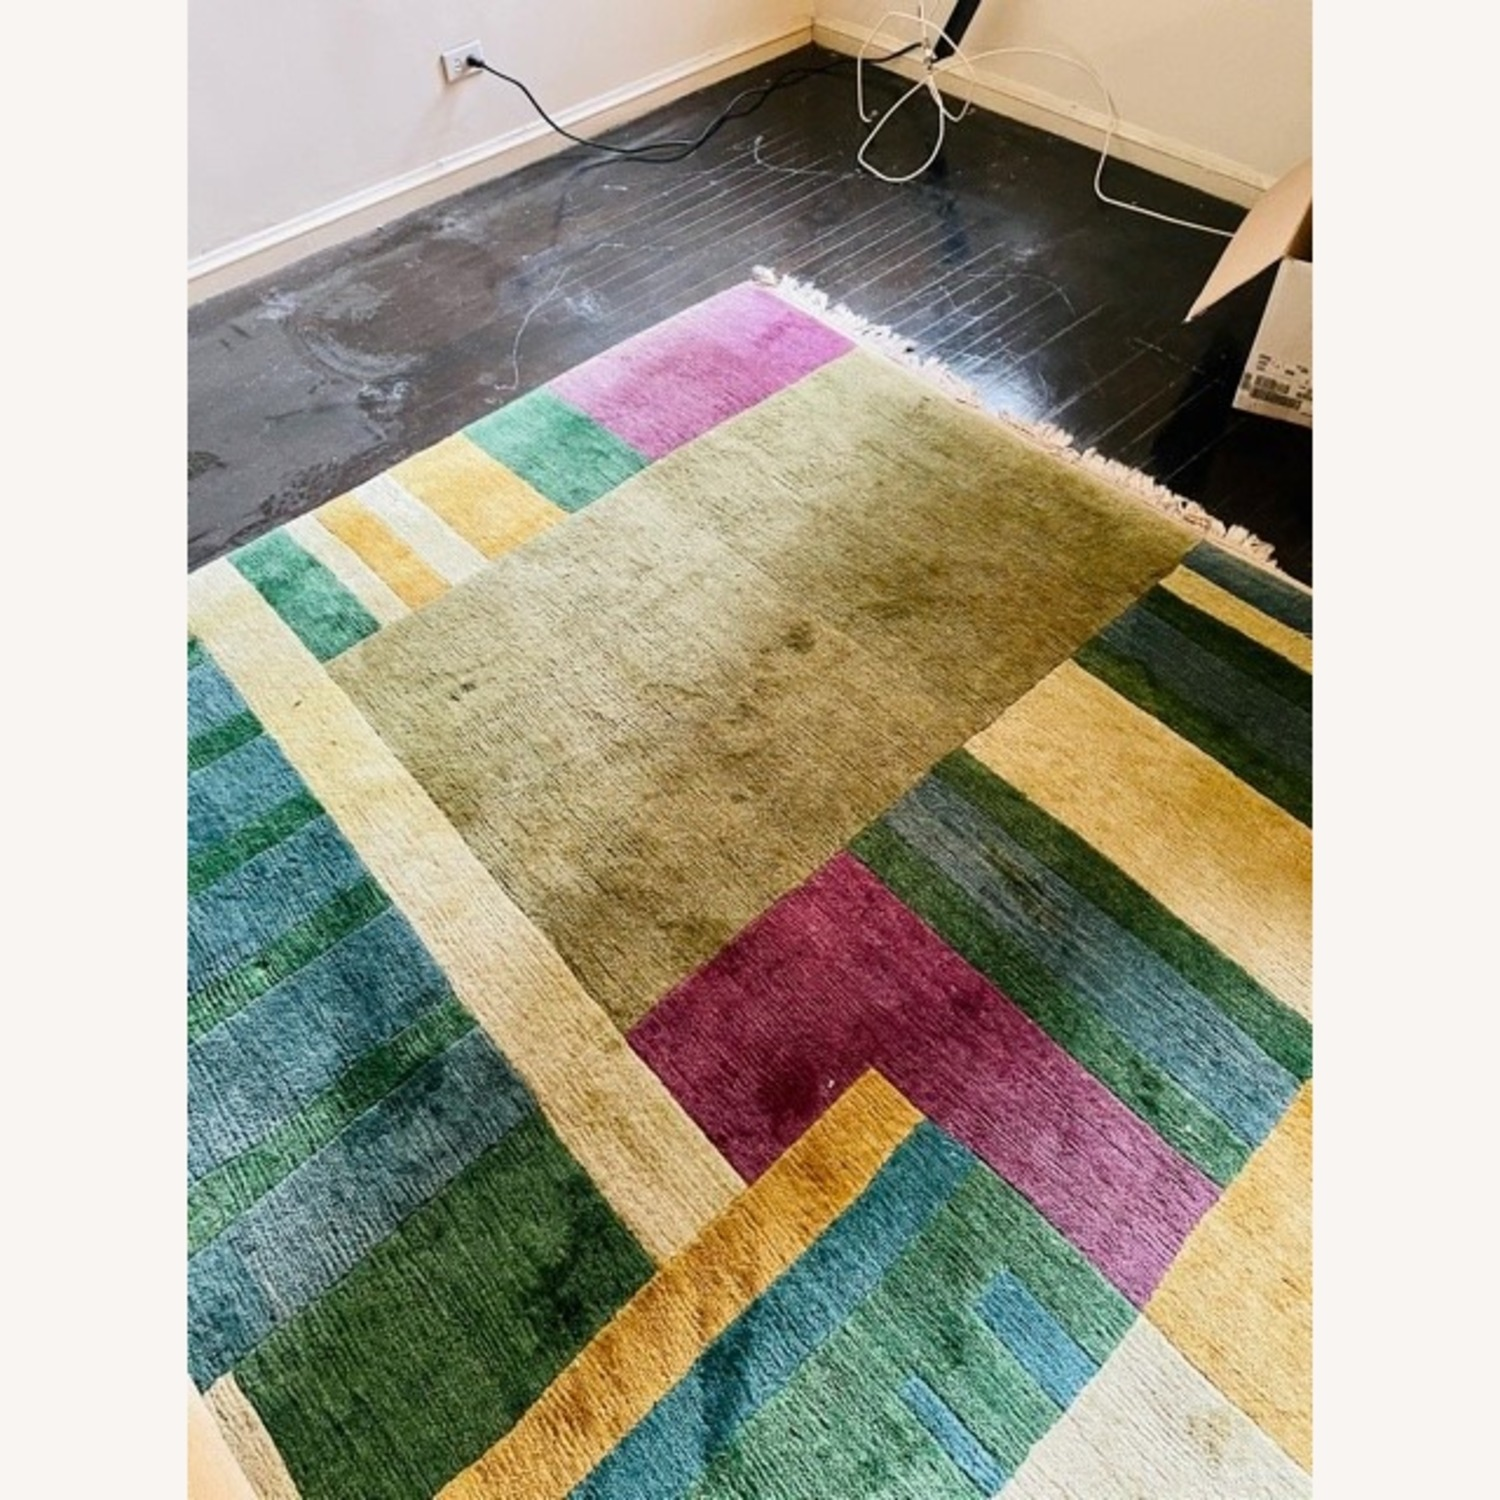 Pile Rug from ABC Carpet - image-1